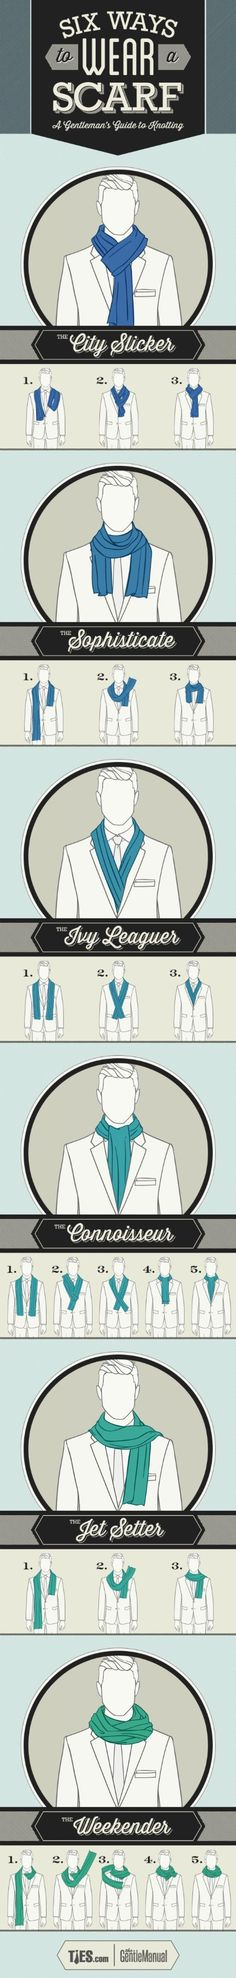 6 ways to tie scarf. Gentlemen's Guide To Scarf Tying. Ways To Wear A Scarf, How To Wear Scarves, Tie Scarves, Scarfs, Neck Scarves, Wearing Scarves, Sharp Dressed Man, Well Dressed Men, Gentlemens Guide